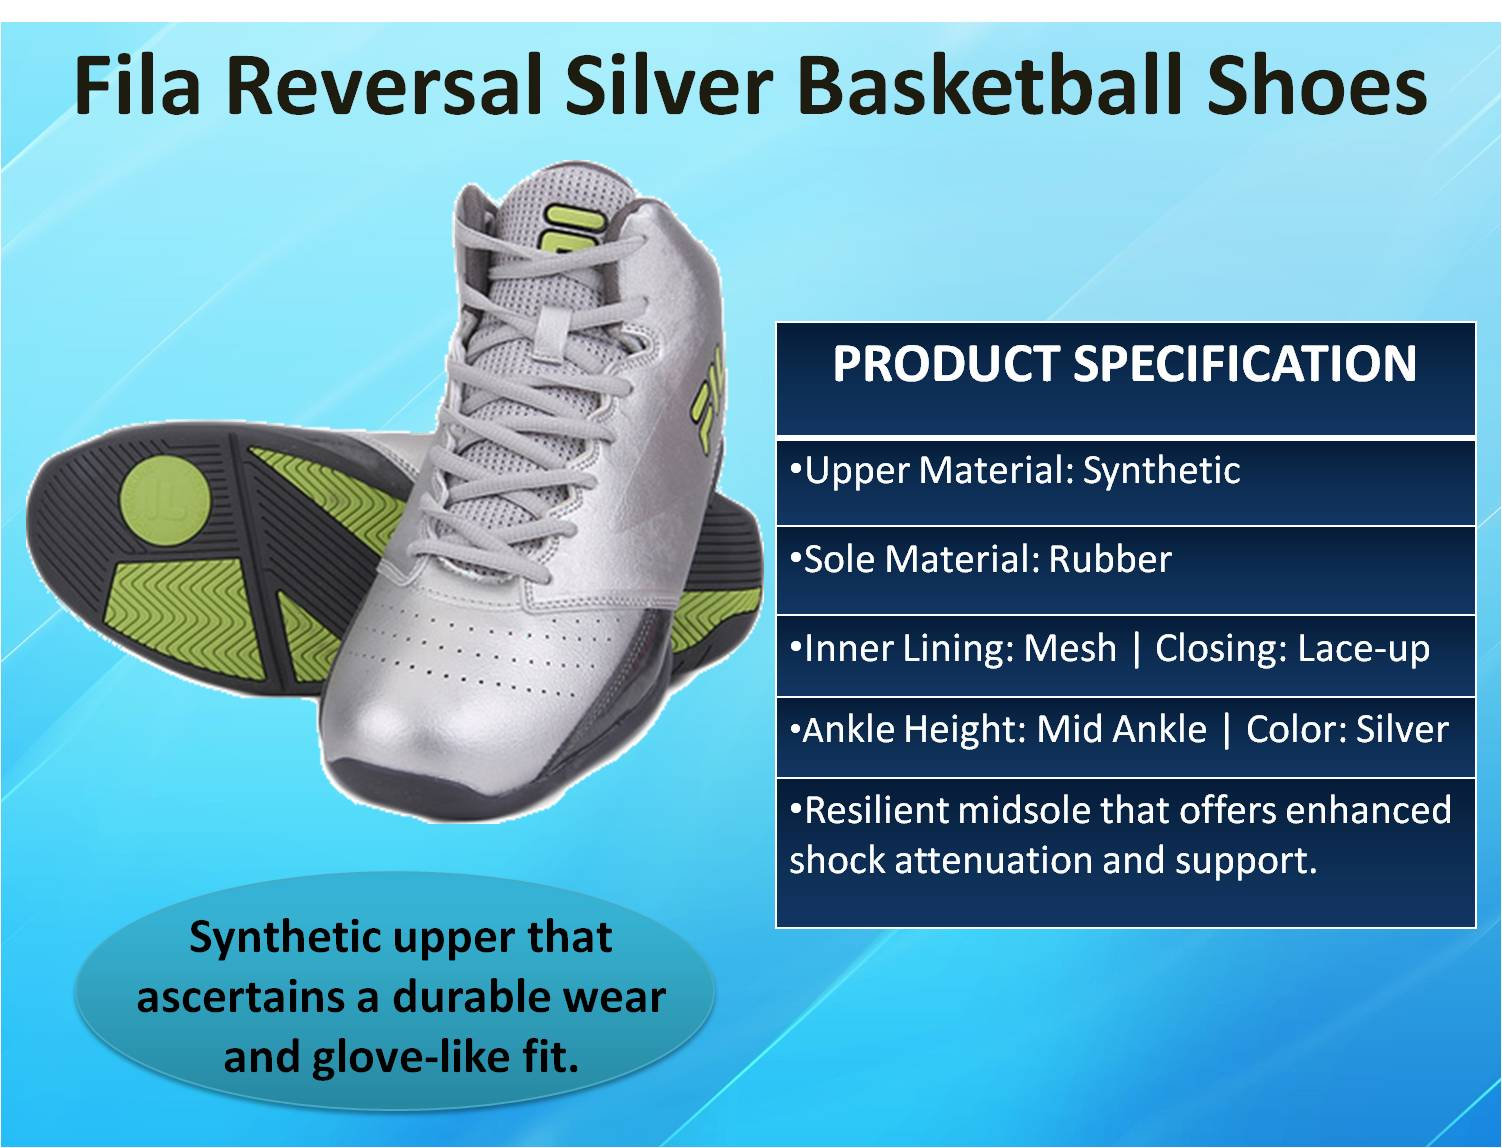 Fila Reversal Silver Basketball Shoes